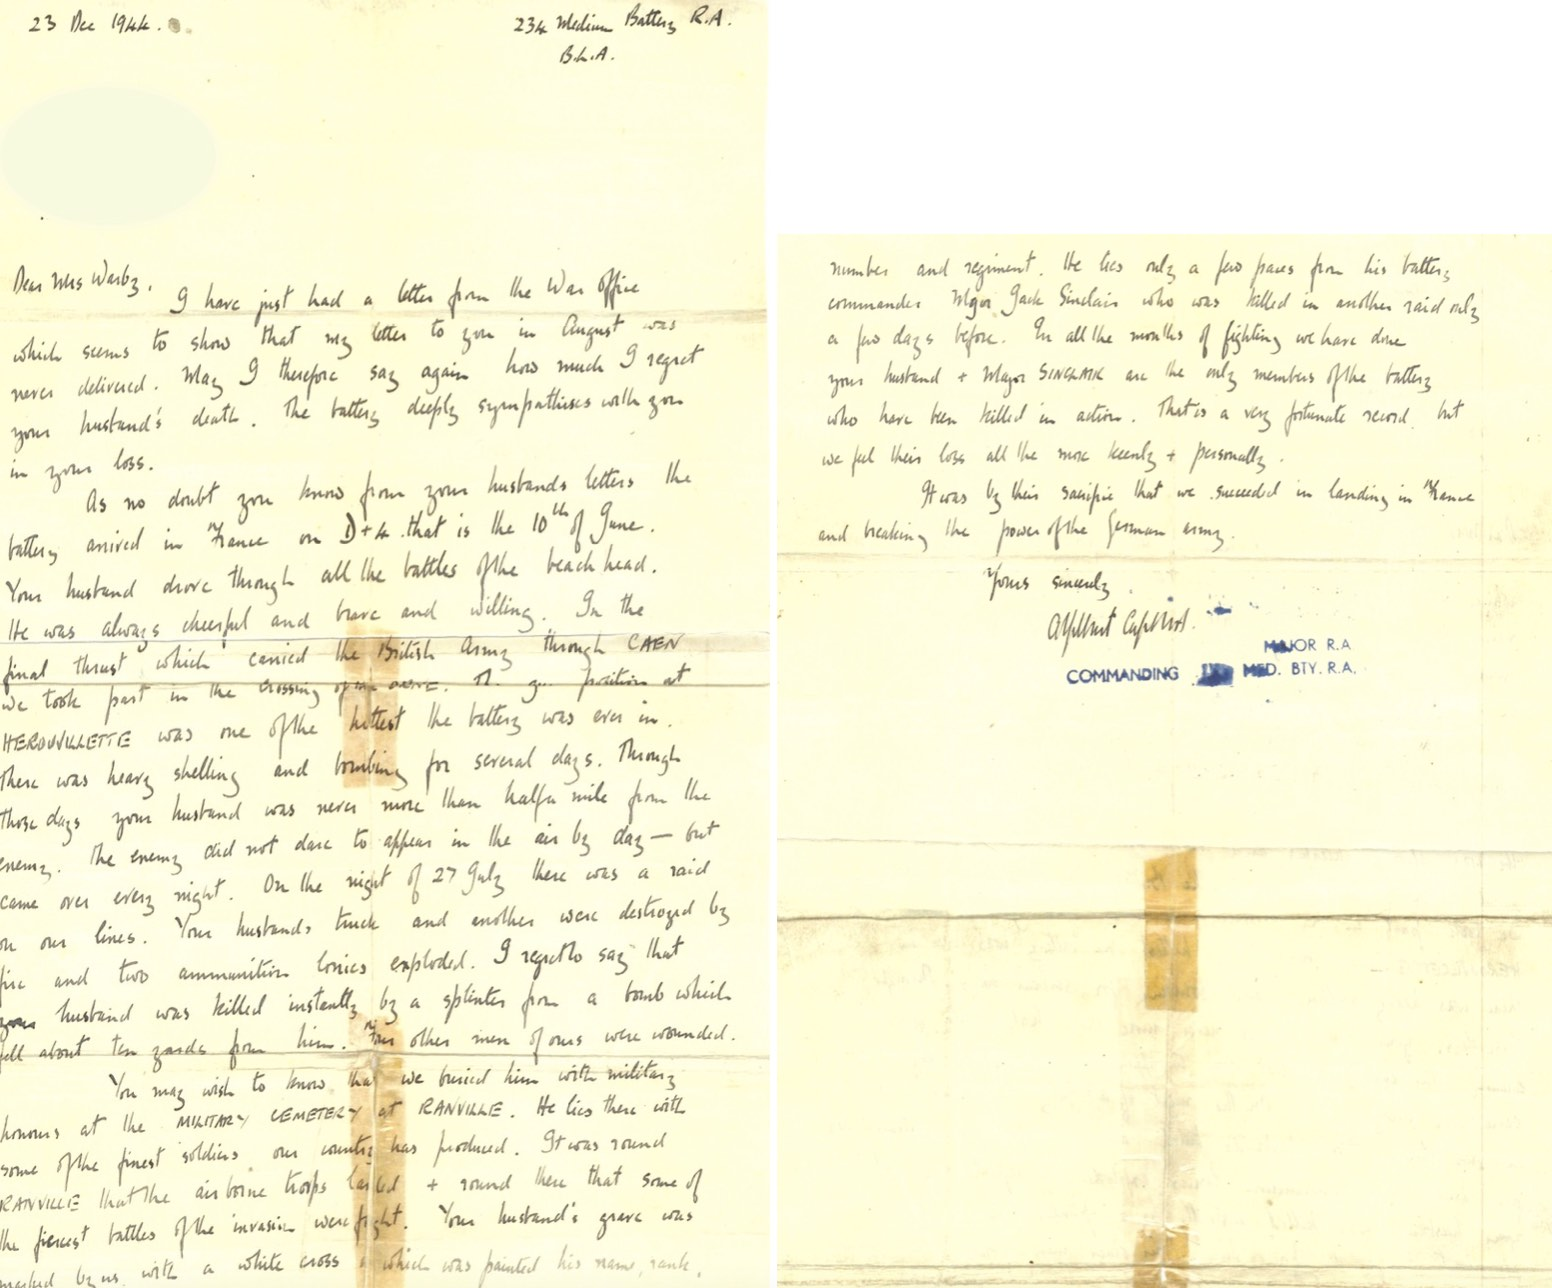 The original letter written to Thomas' mother by the Major